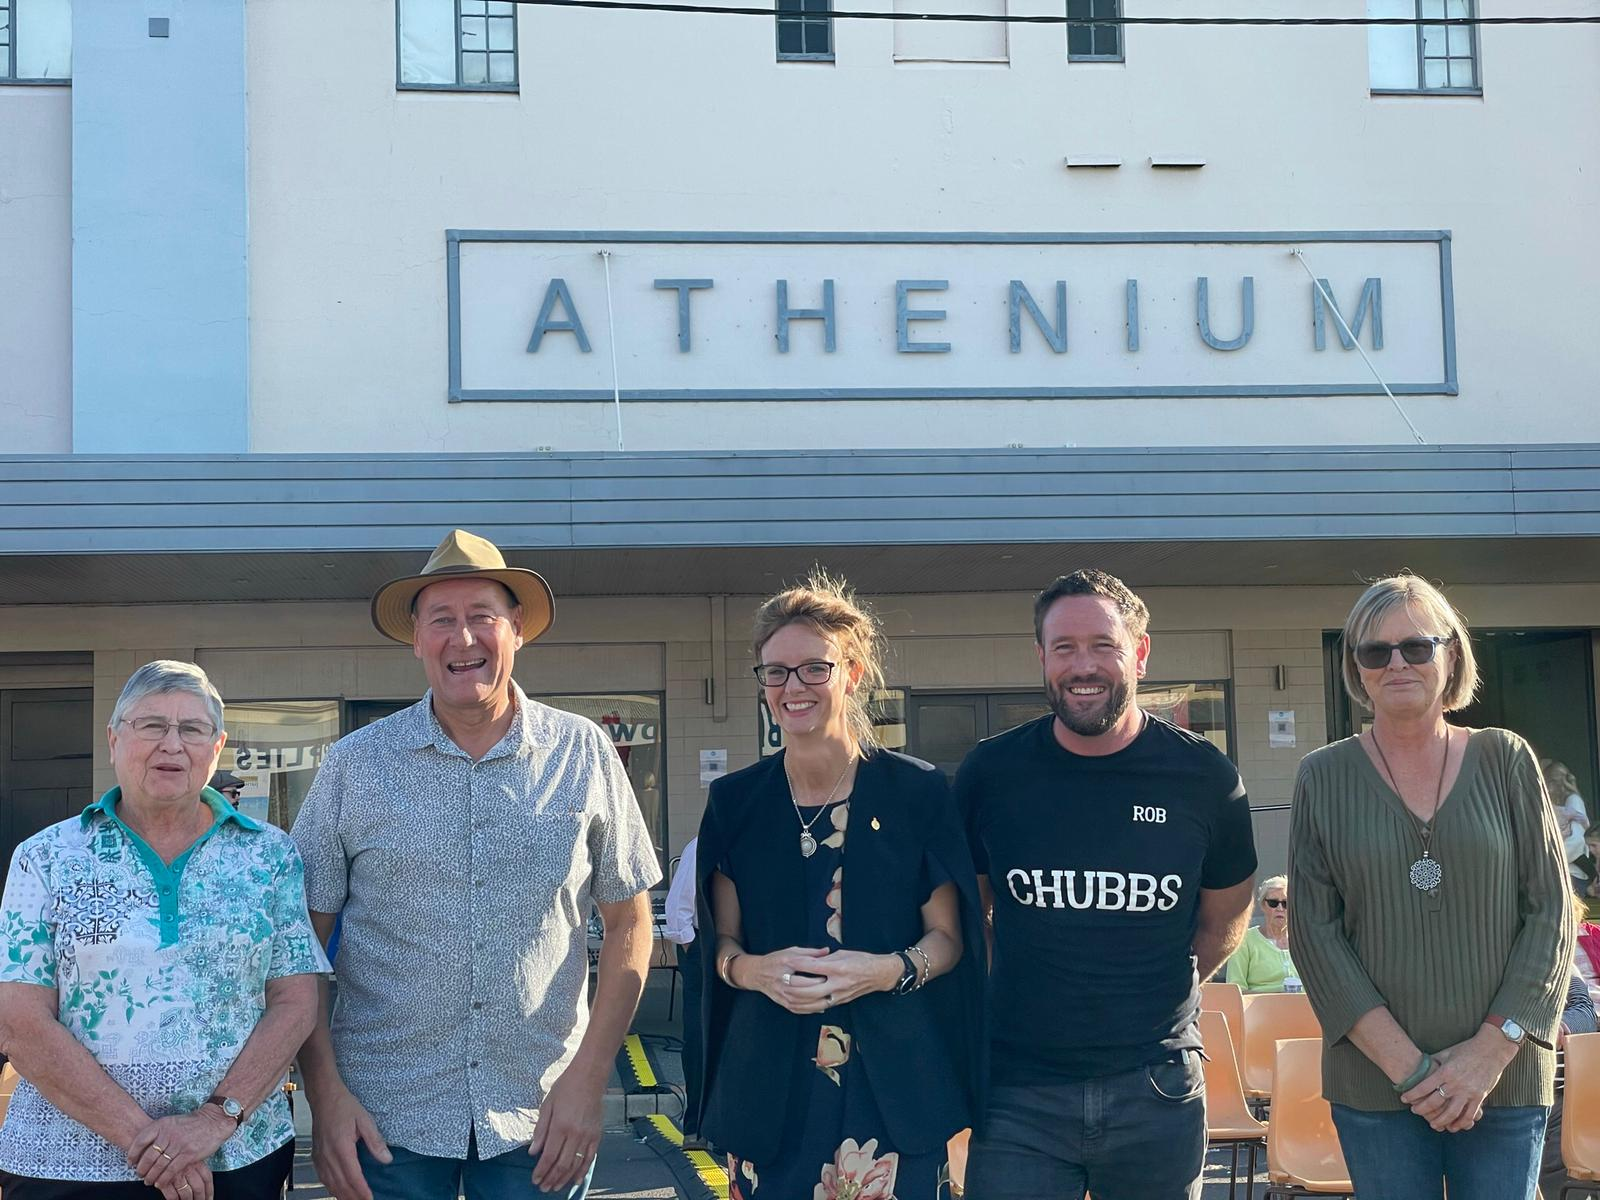 Pam Halliburton, Neil Smith, Steph Cooke and two other people smile at the camera in front of the Athenium Theatre.